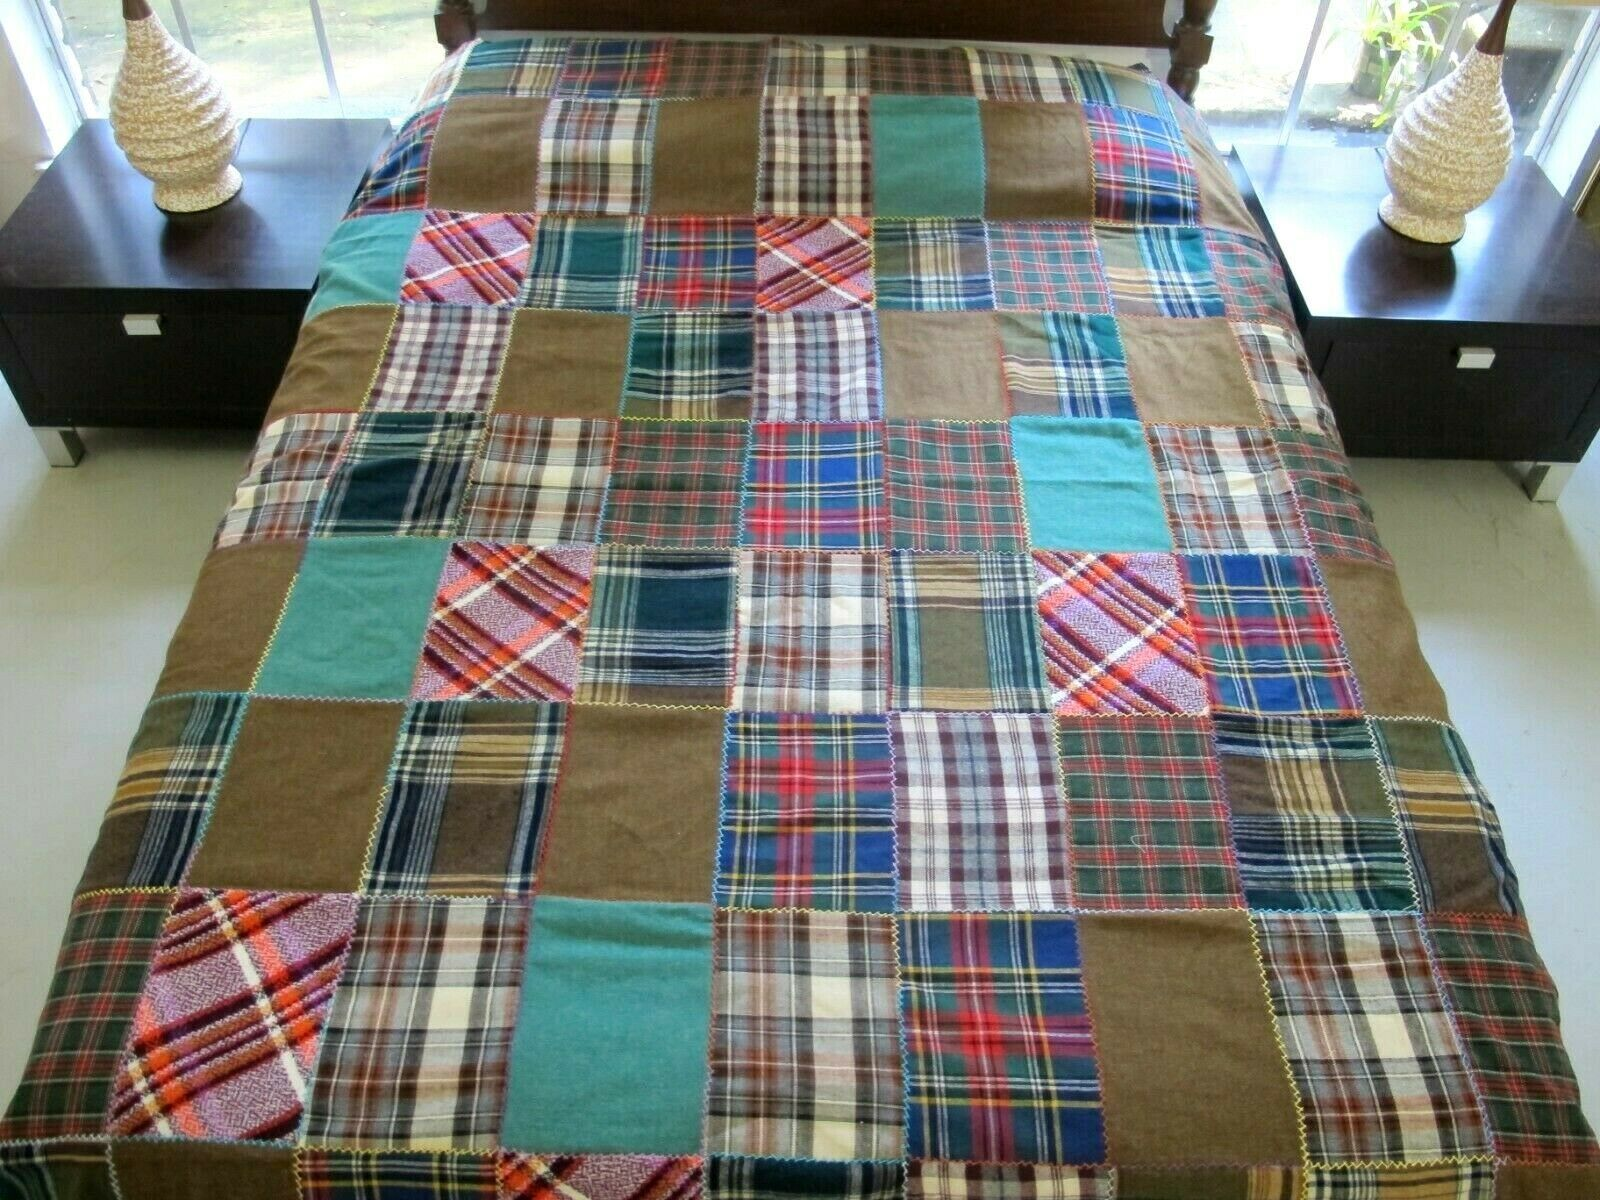 Vintage Feather Stitched All Wool Scottish Tartan Brick Wall Quilt Top 85 X 78 In 2020 Wall Quilts Quilted Wall Hangings Quilt Top